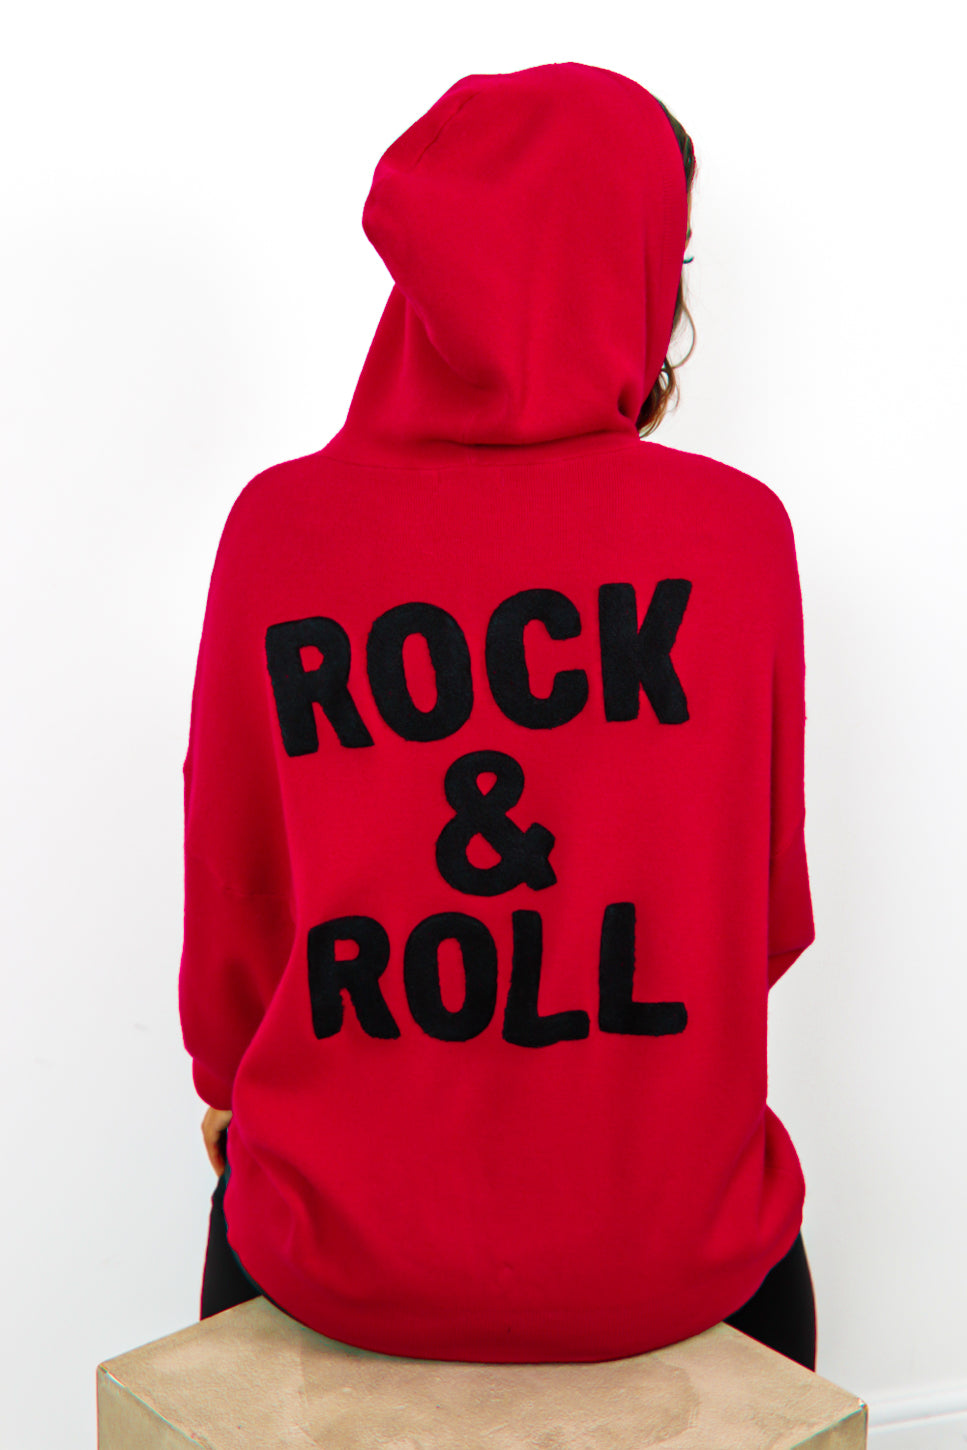 You're My Rock - Red Rock And Roll Slogan Knitted Hoodie